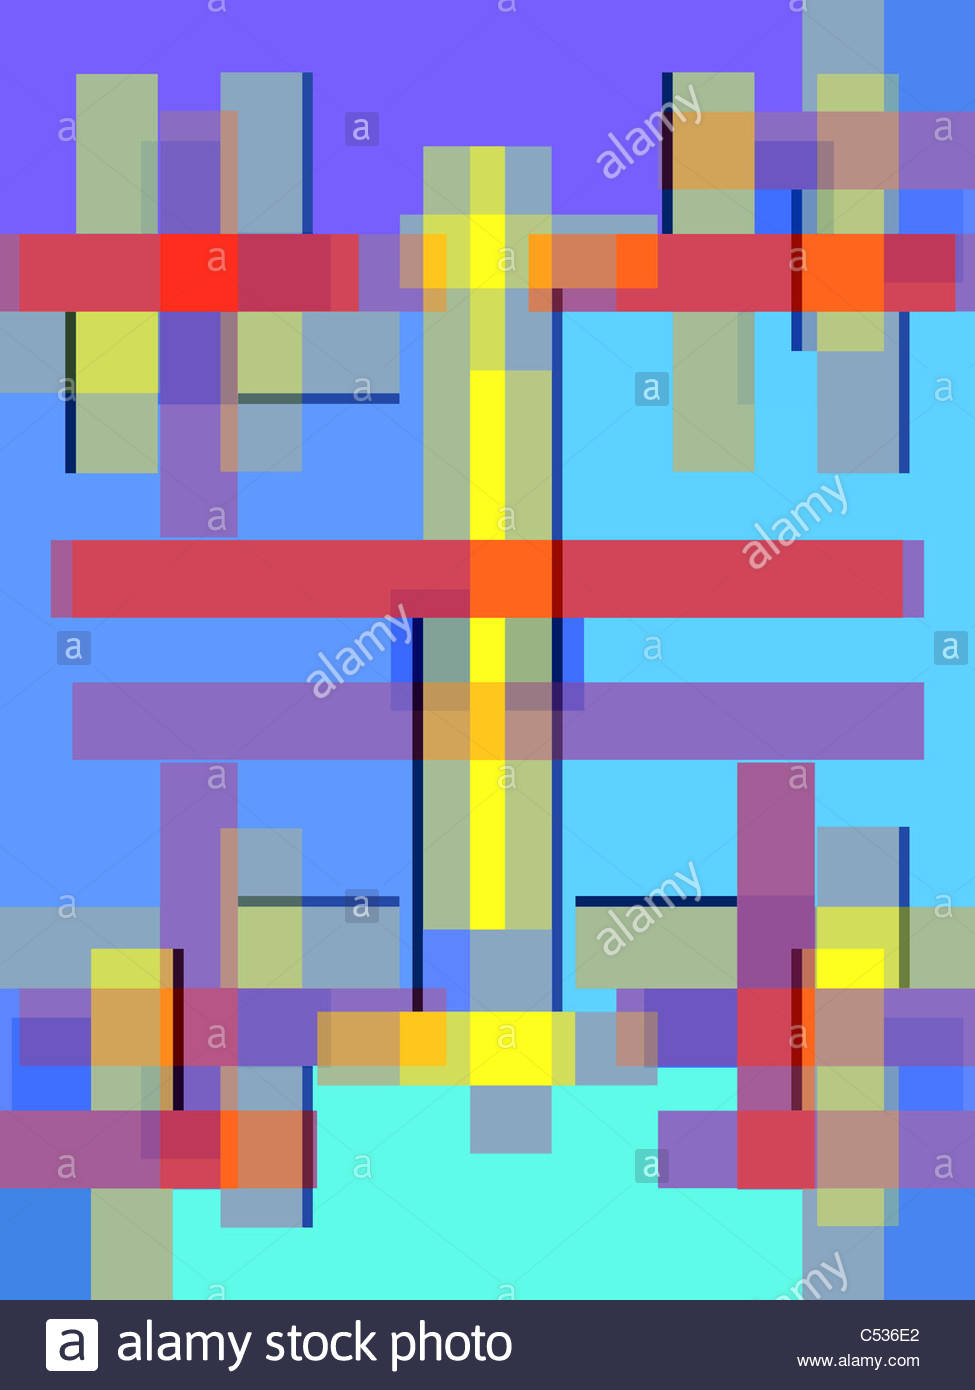 geometric composition using only squares and rectangles in shades